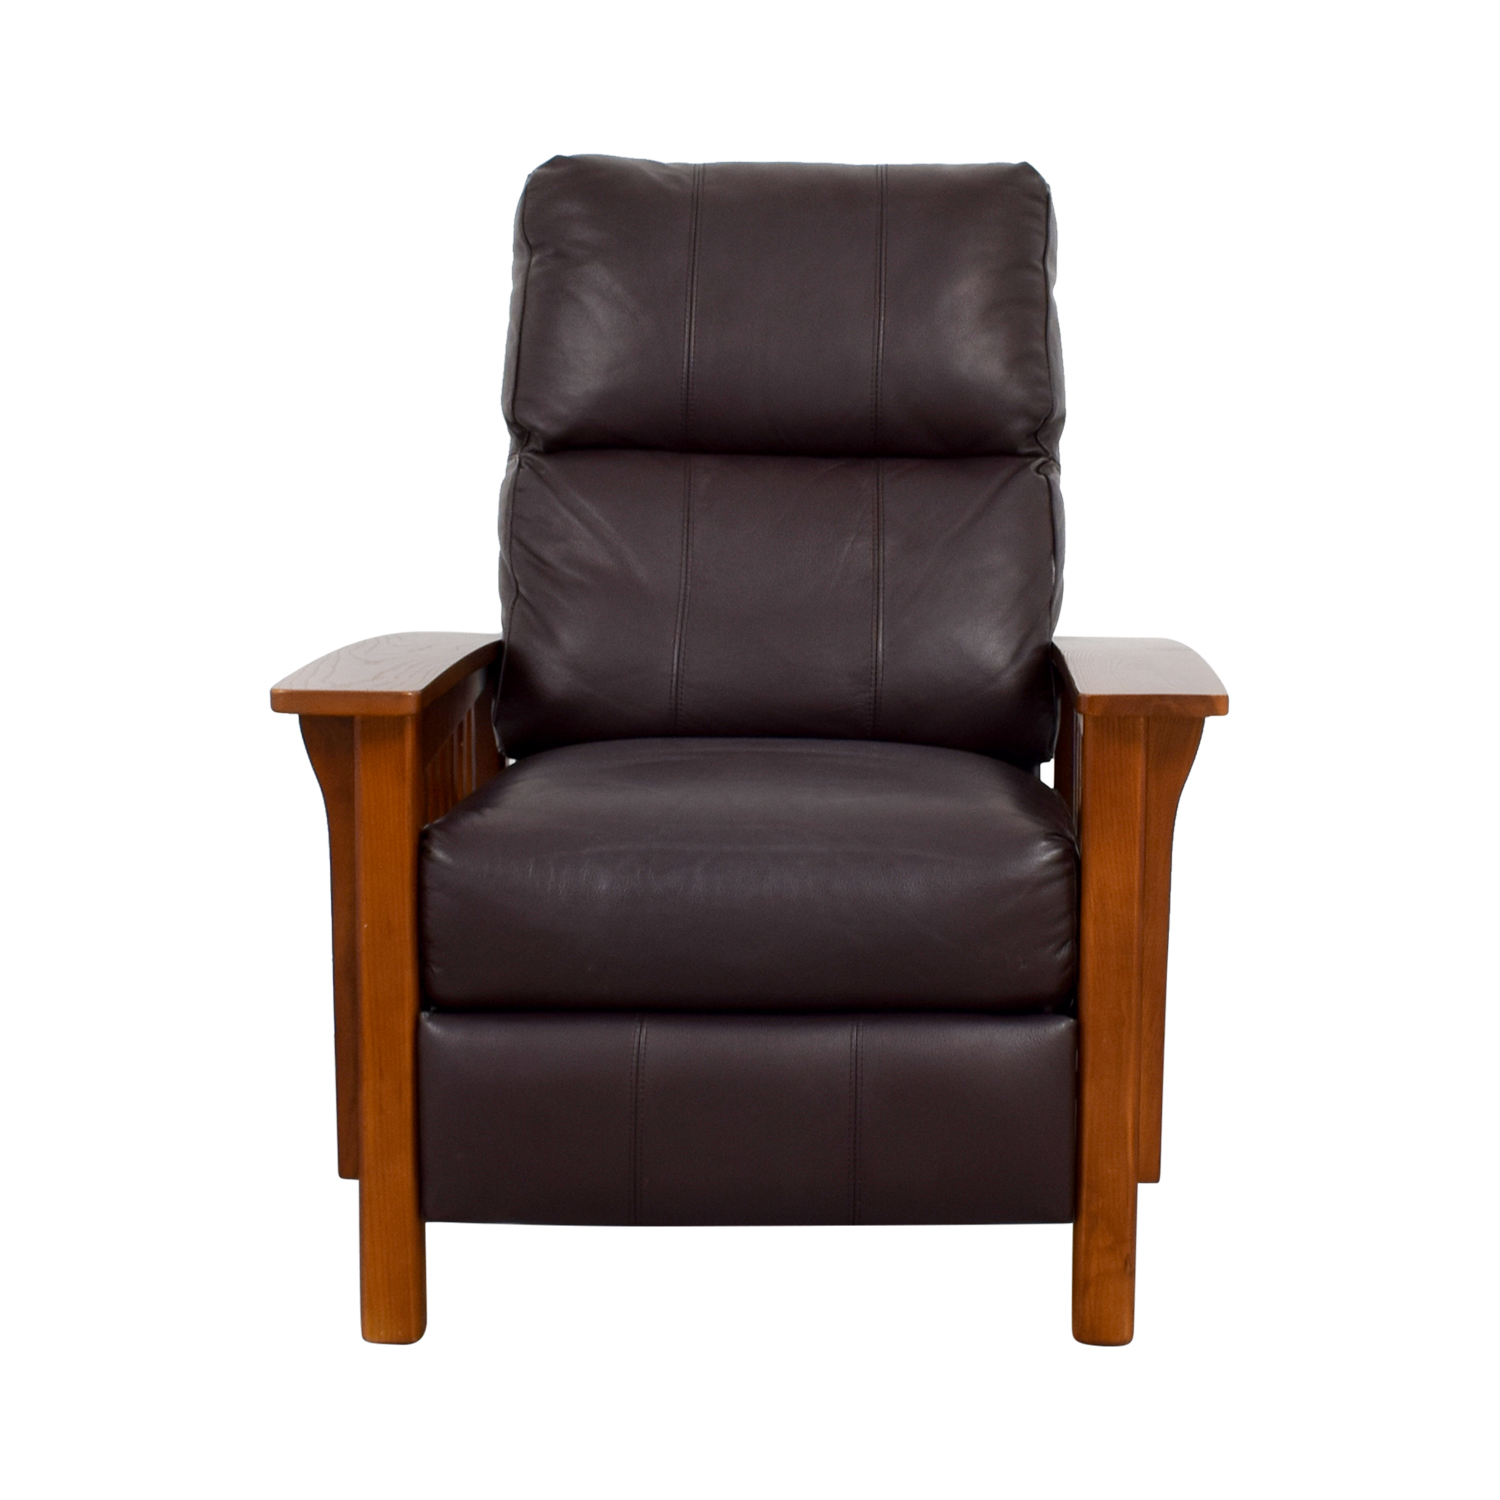 Macys Macys Harrison Brown Leather Pushback Recliner